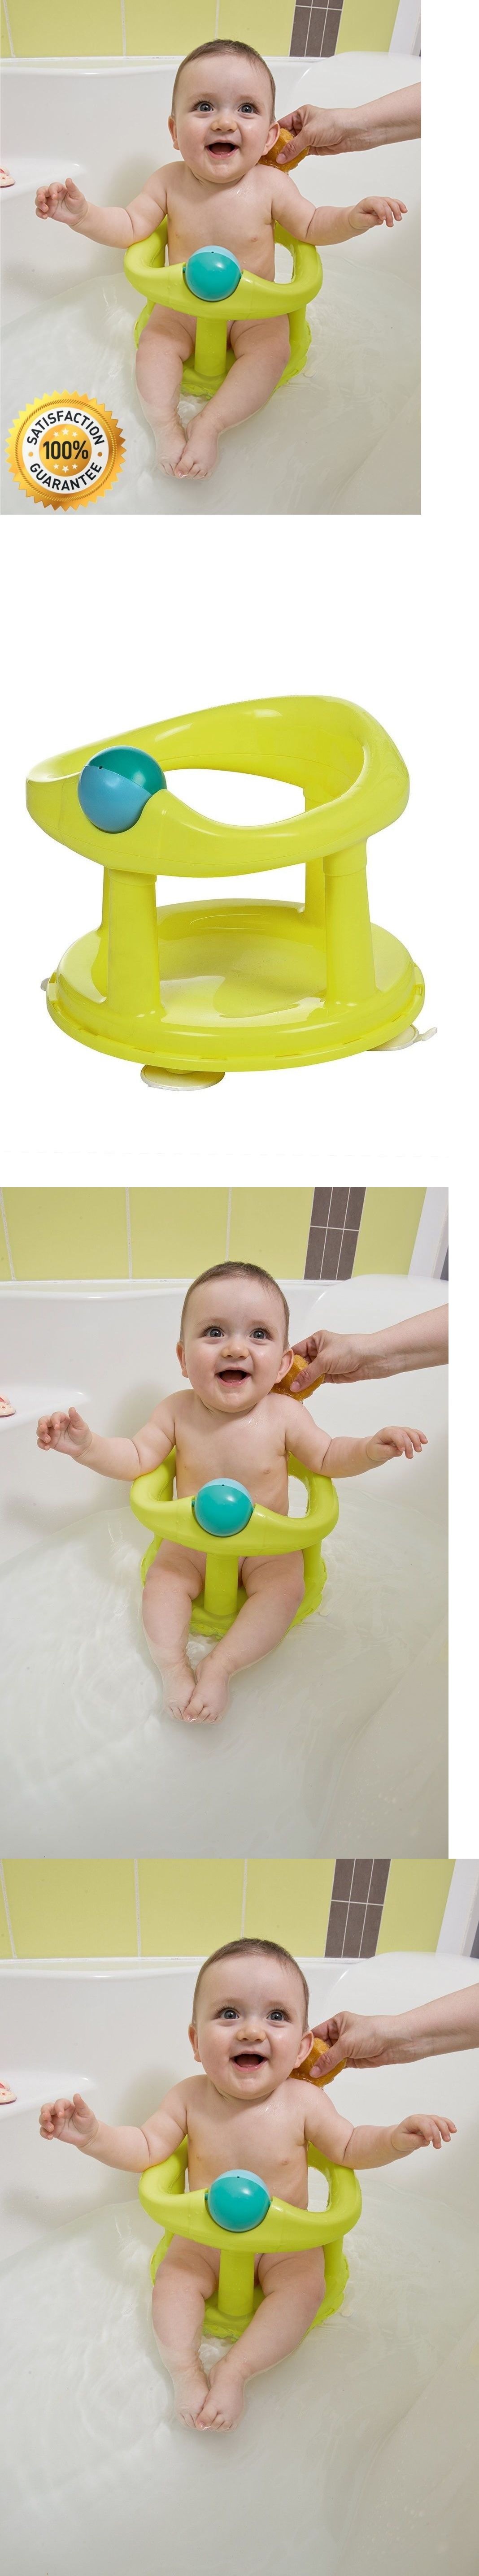 Safety 1st Baby infant Toddler Bath Tub Swivel Seat With Fun play ...